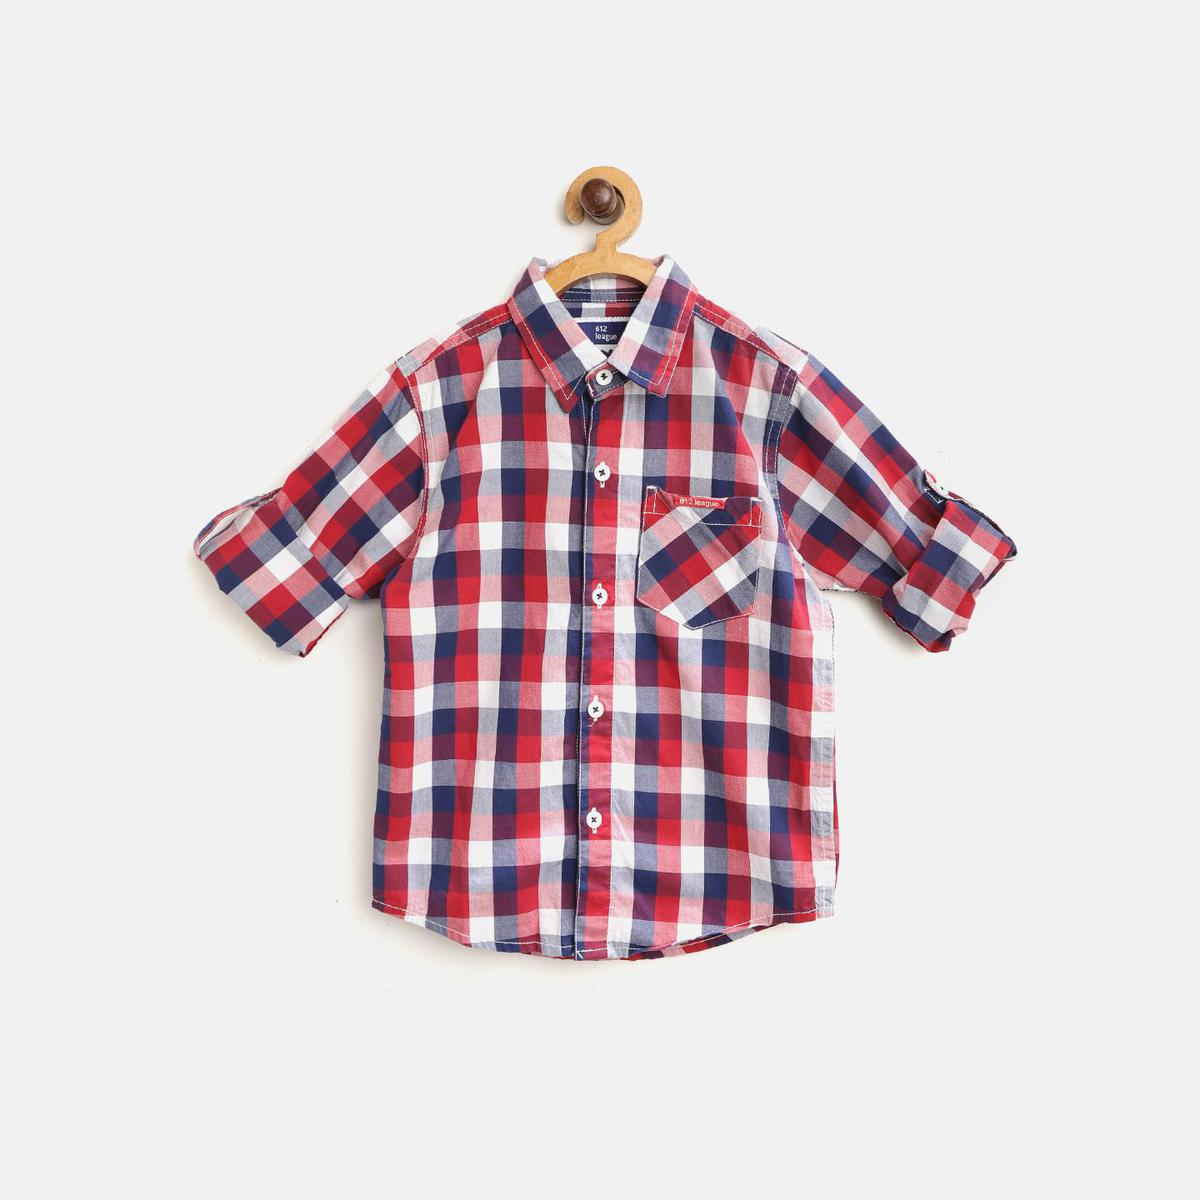 612 League - Red Colored Checked Shirts For Boys